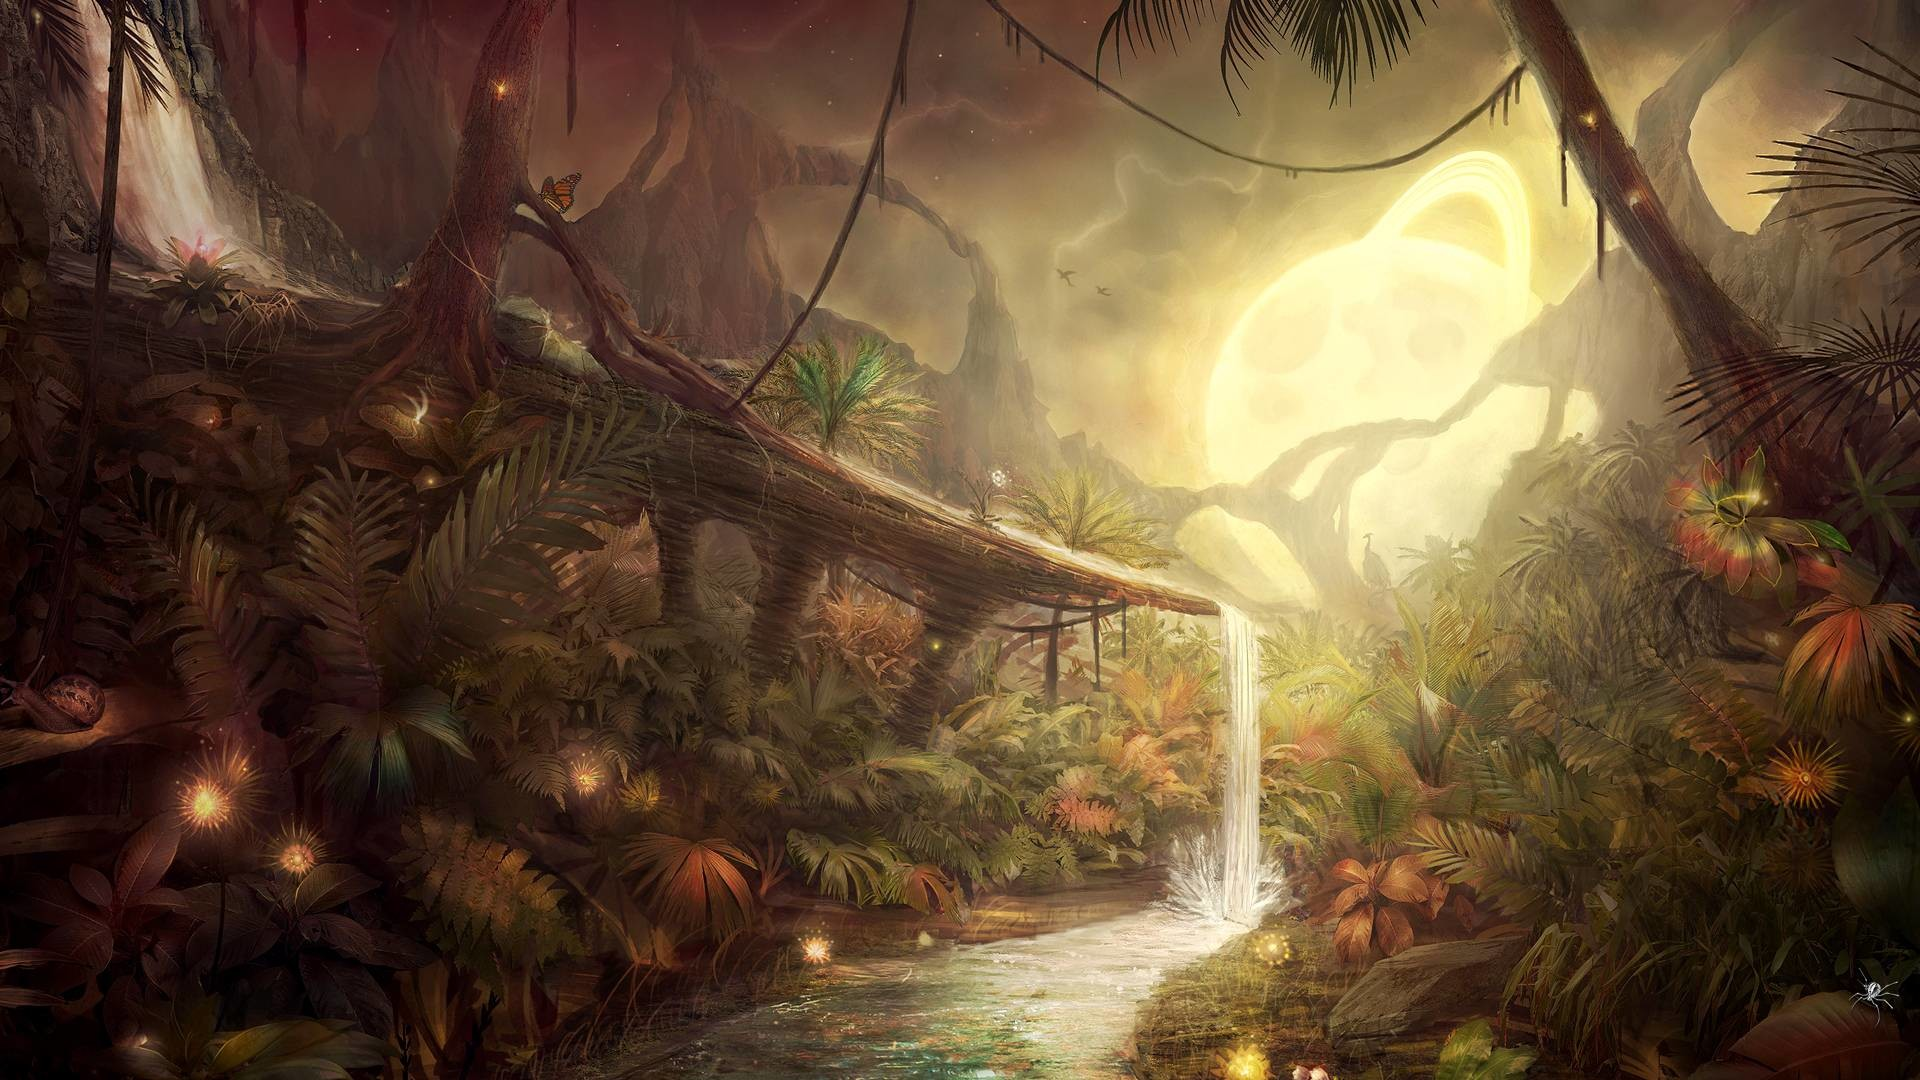 Fantasy HD Wallpapers Backgrounds Wallpaper 1366×768 Fantasy Wallpaper (36  Wallpapers)   Adorable